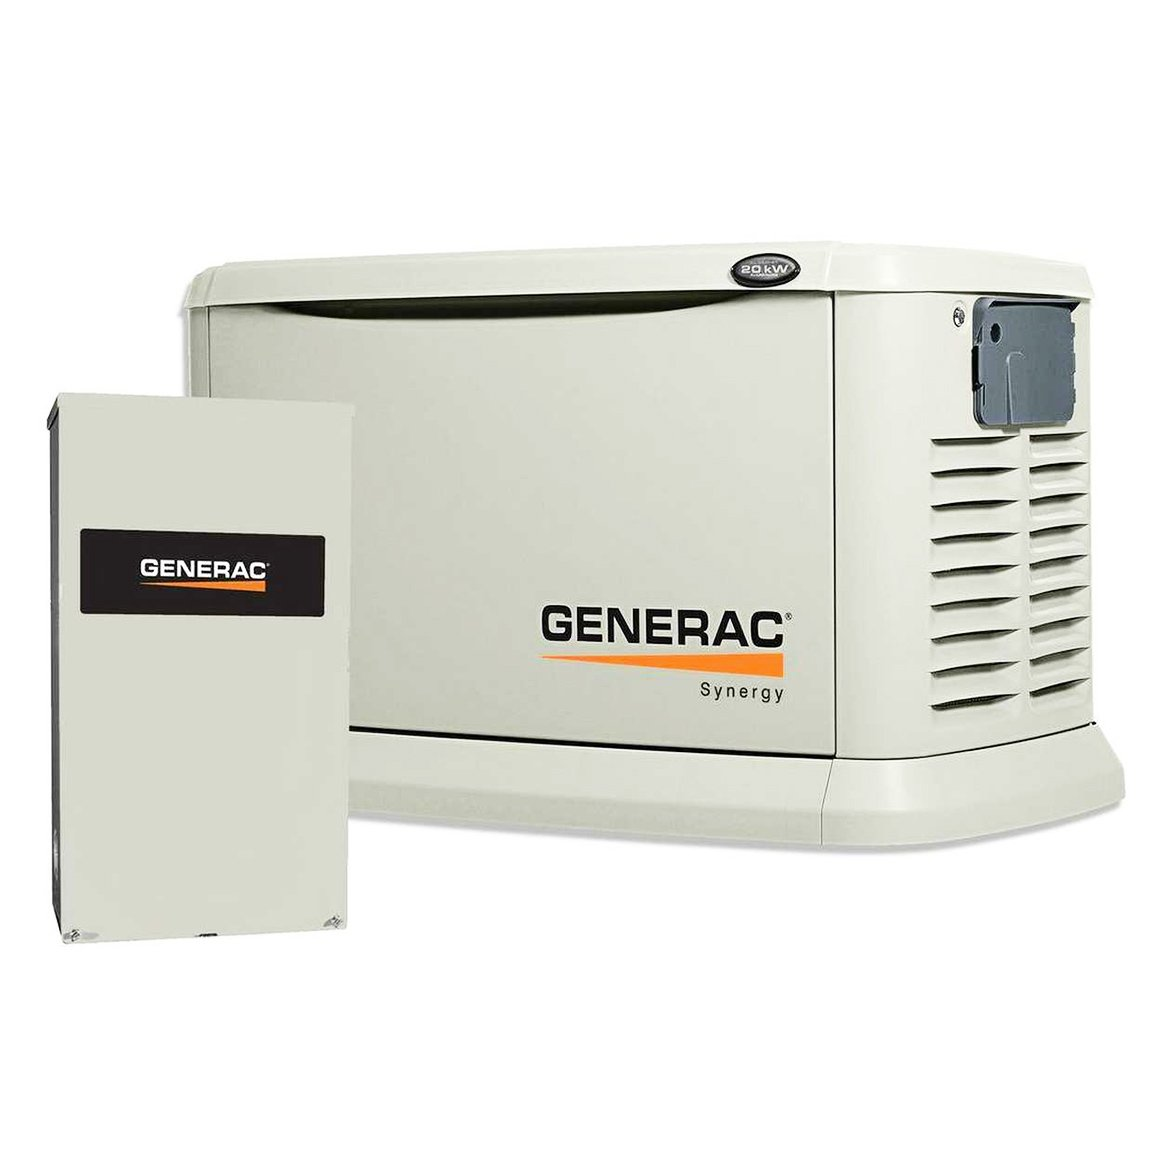 Amazon.com : Generac 7041 Synergy 20kW/18kW Variable Speed Air Cooled Home  Standby Generator with Whole House 200 Amp Transfer Switch (Non-SE CUL) :  Garden ...